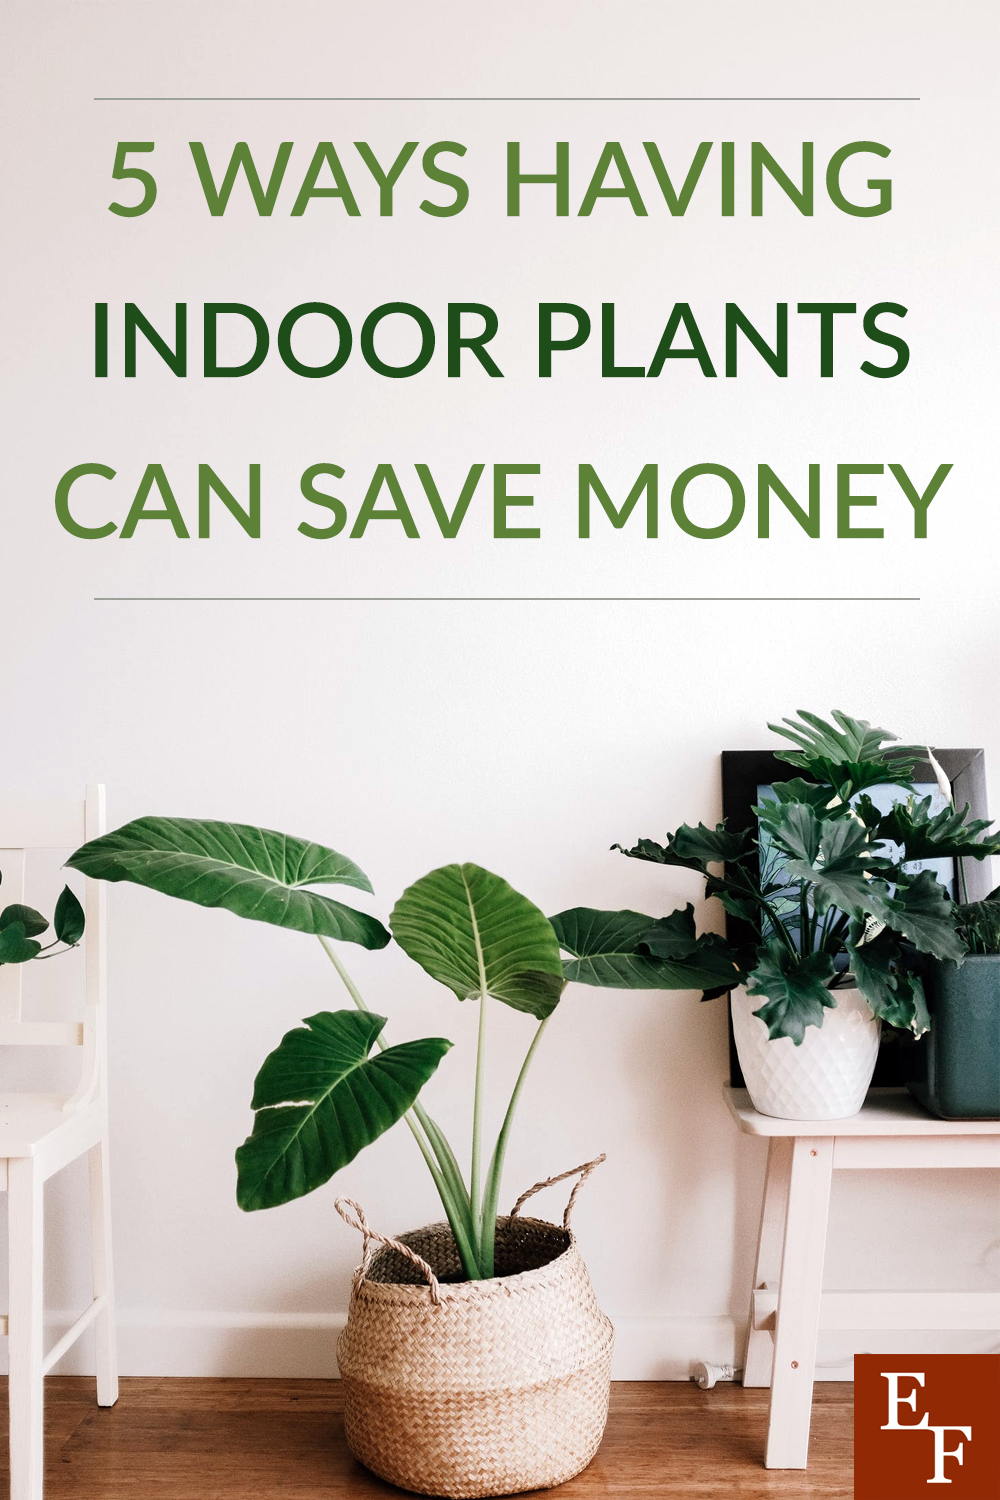 When it comes to saving money at home, there is one surprising area most of us overlook. Here's how having indoor plants can save you money.